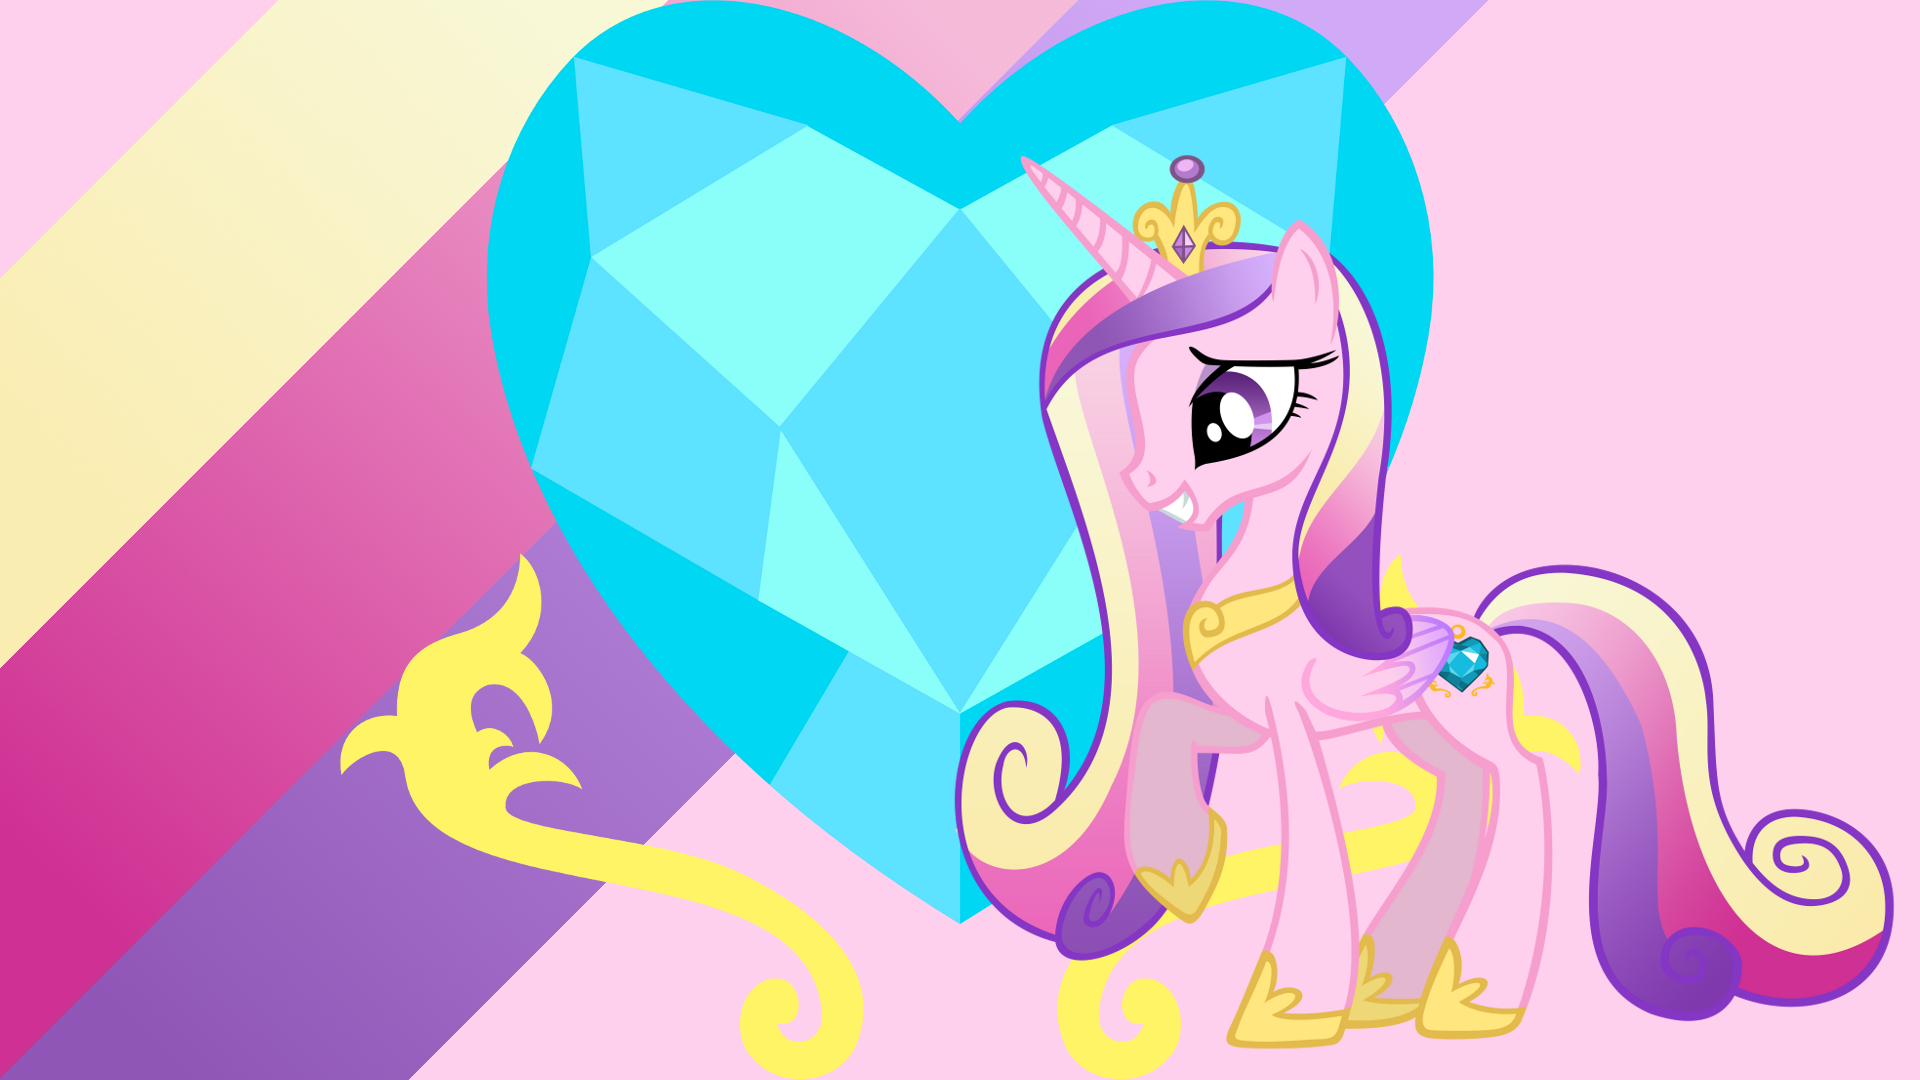 Minimalist Wallpaper 82: Princess Cadance by DraikJack, Softfang and ZuTheSkunk